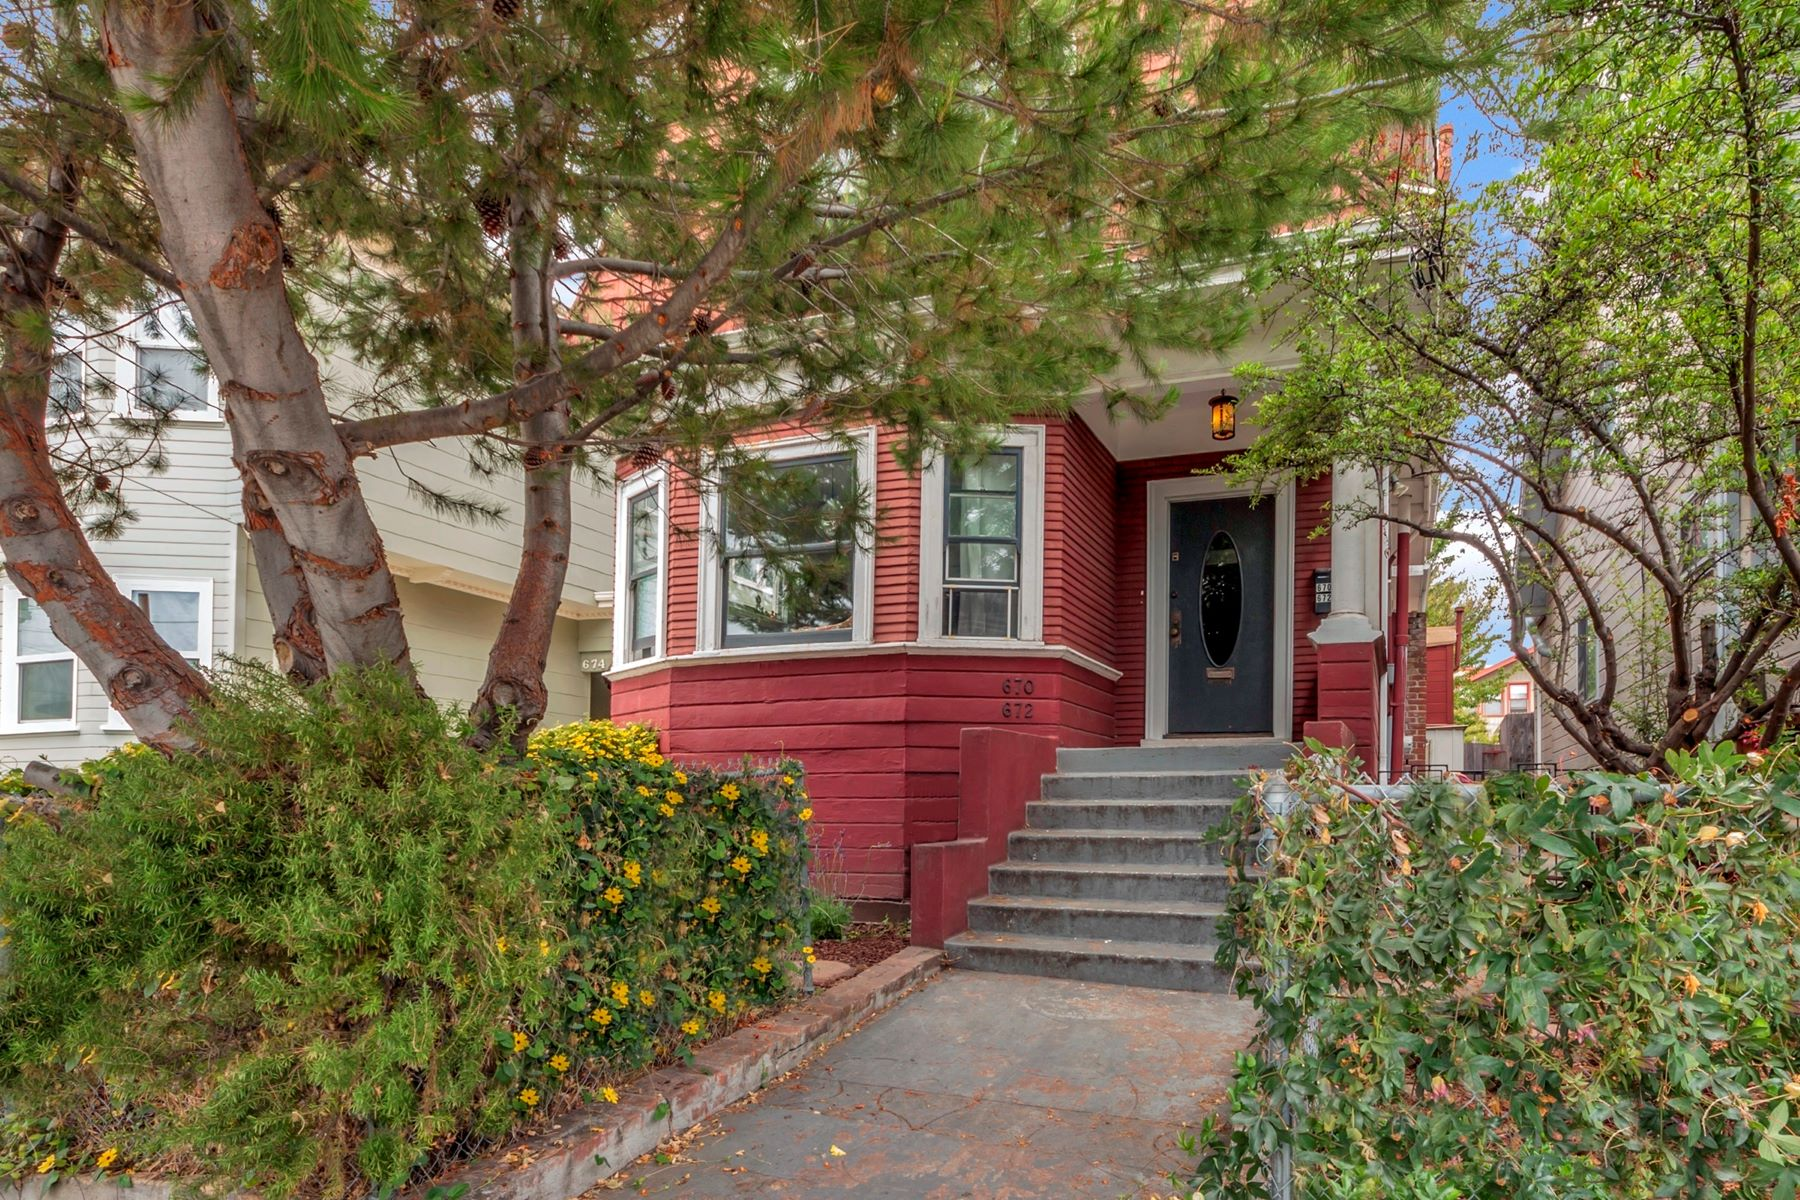 Duplex for Sale at Duplex With Detached Metro Cottage 670 Apgar Street Oakland, California 94609 United States